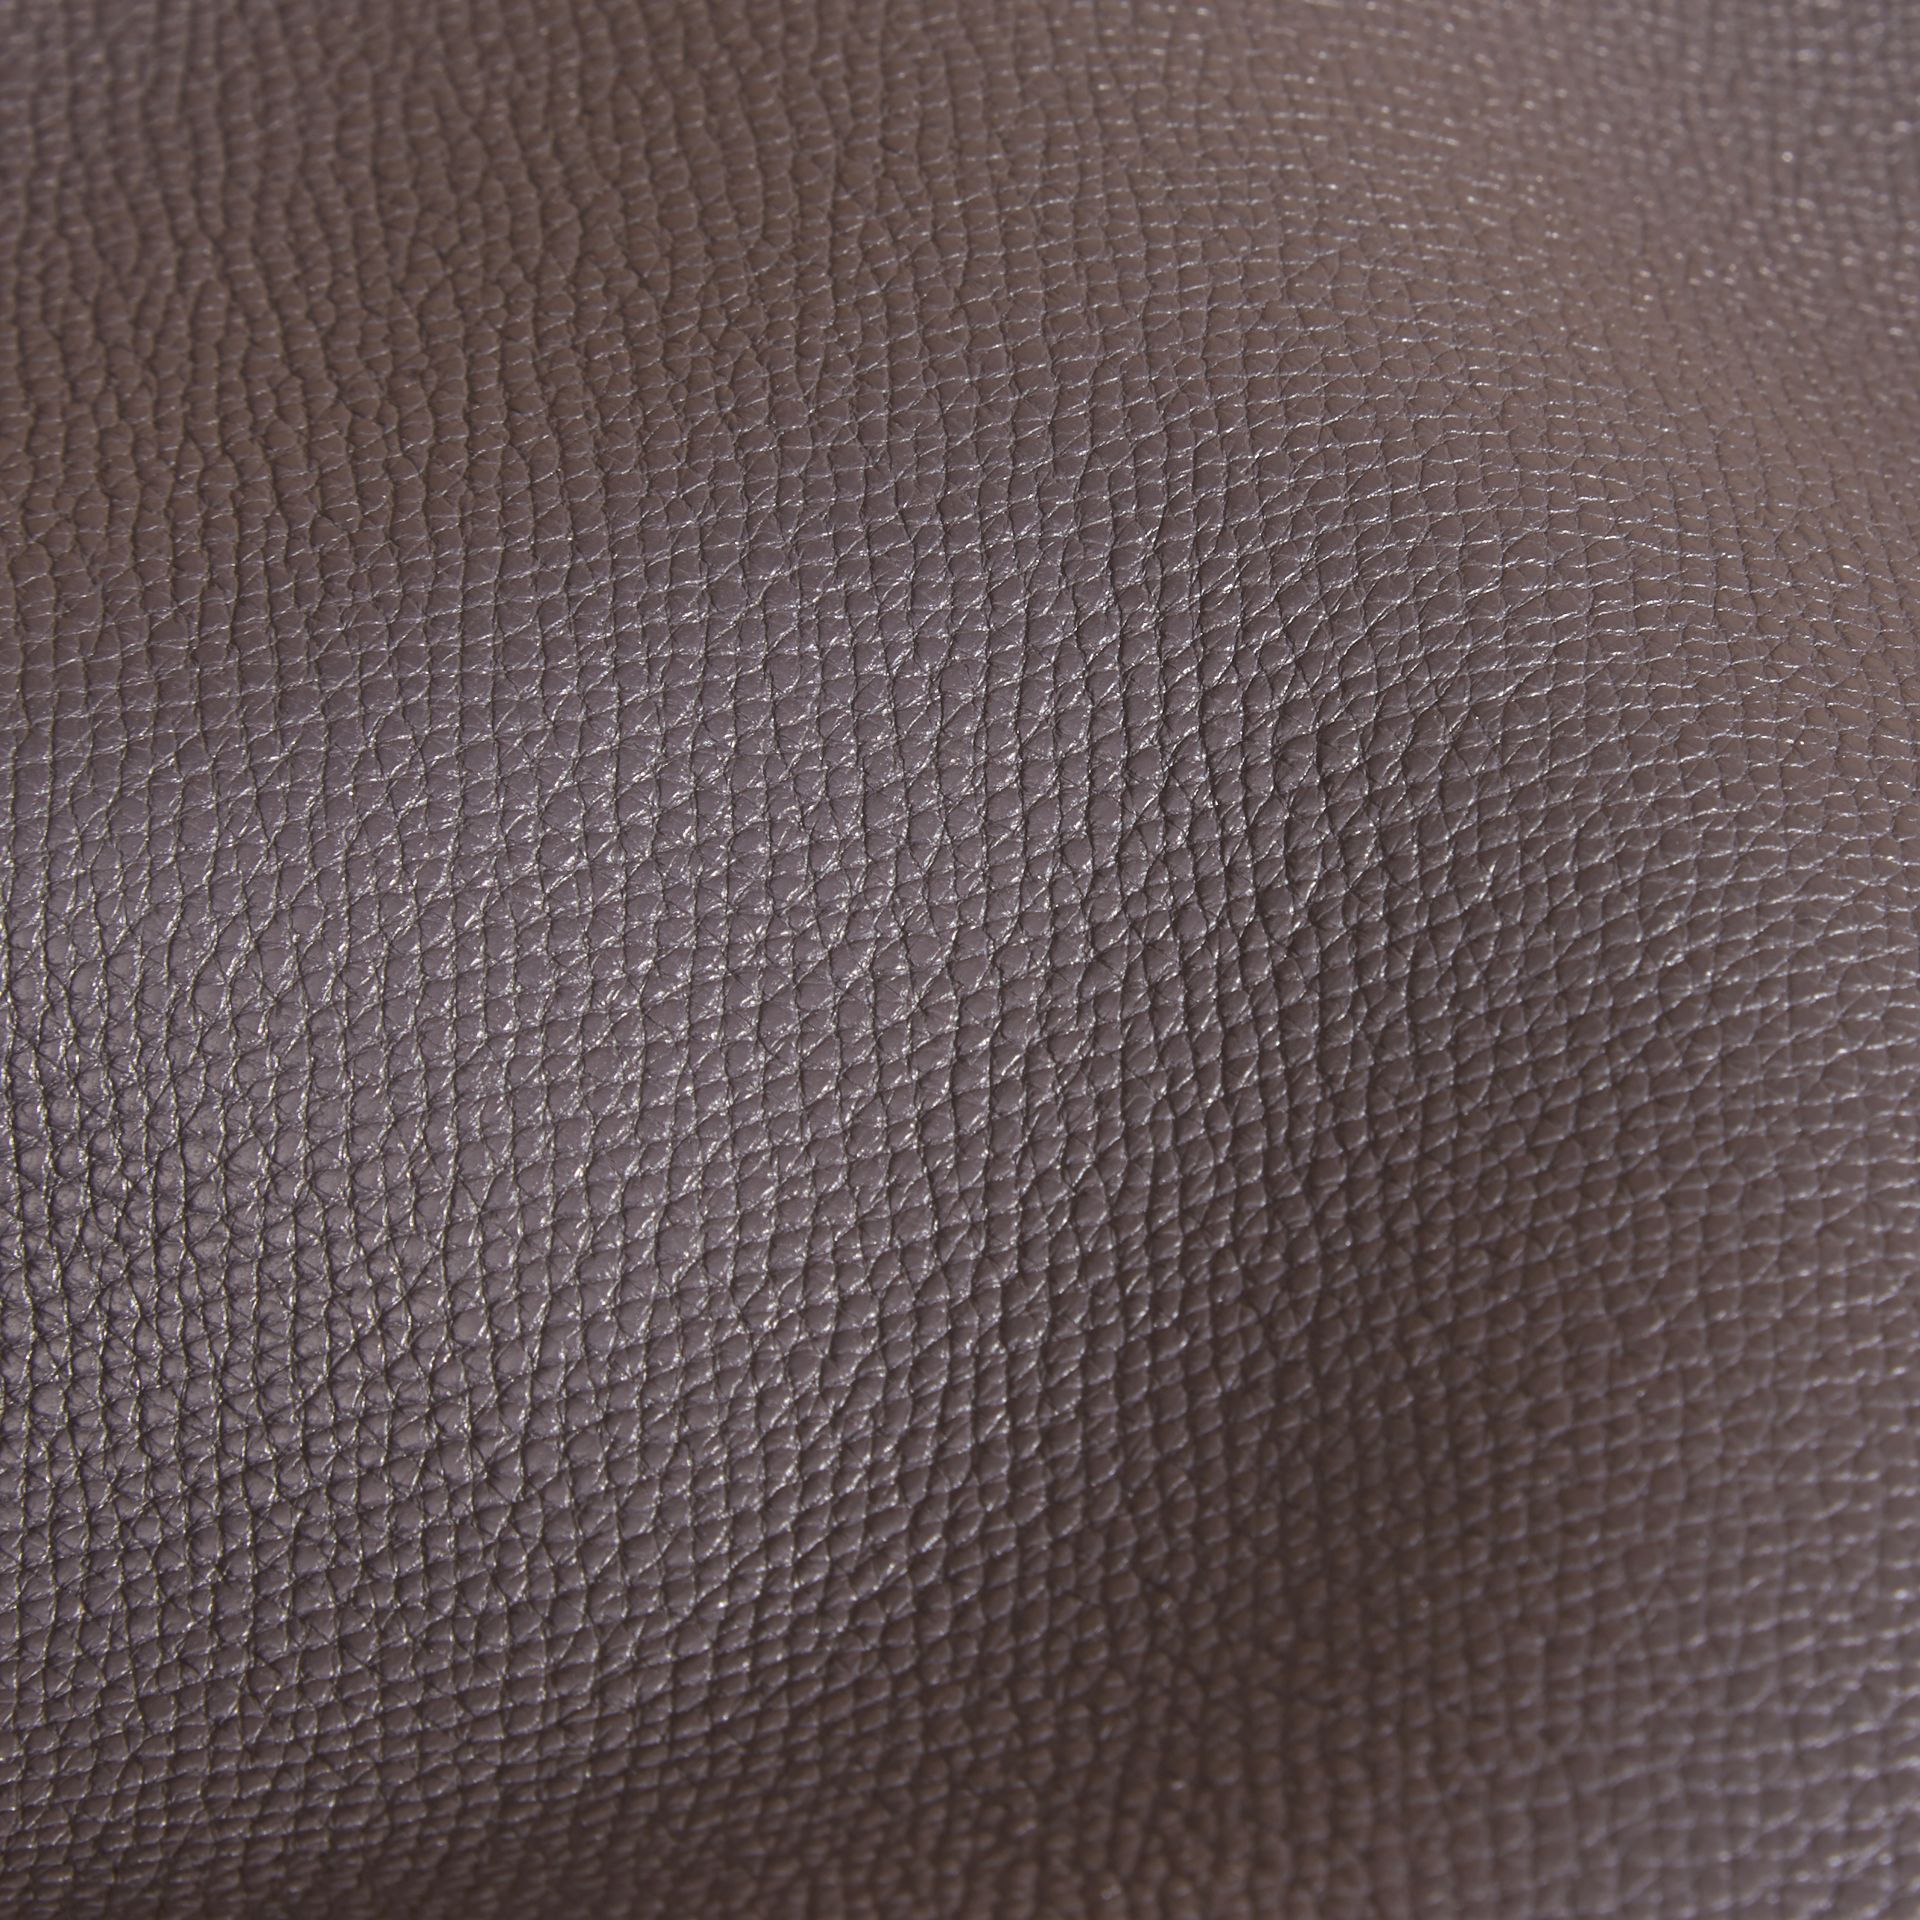 Sepia grey The Saddle Clutch in Grainy Bonded Leather Sepia Grey - gallery image 2